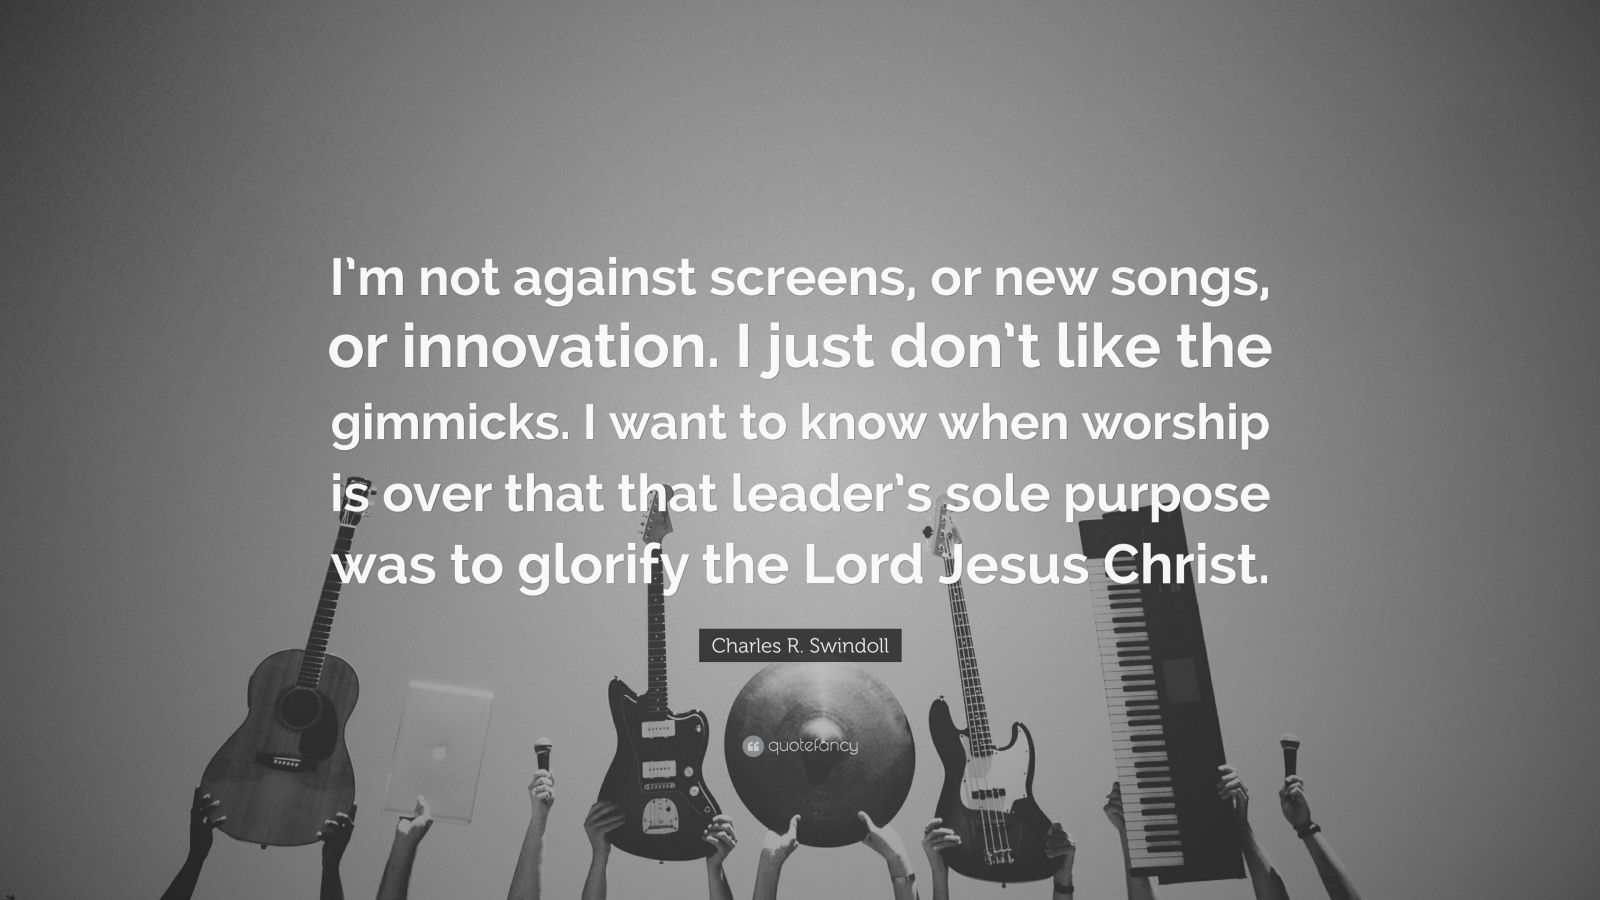 """Charles R. Swindoll Quote: """"I'm not against screens, or new songs, or innovation. I just don't like the gimmicks. I want to know when worship is over that that leader's sole purpose was to glorify the Lord Jesus Christ."""""""